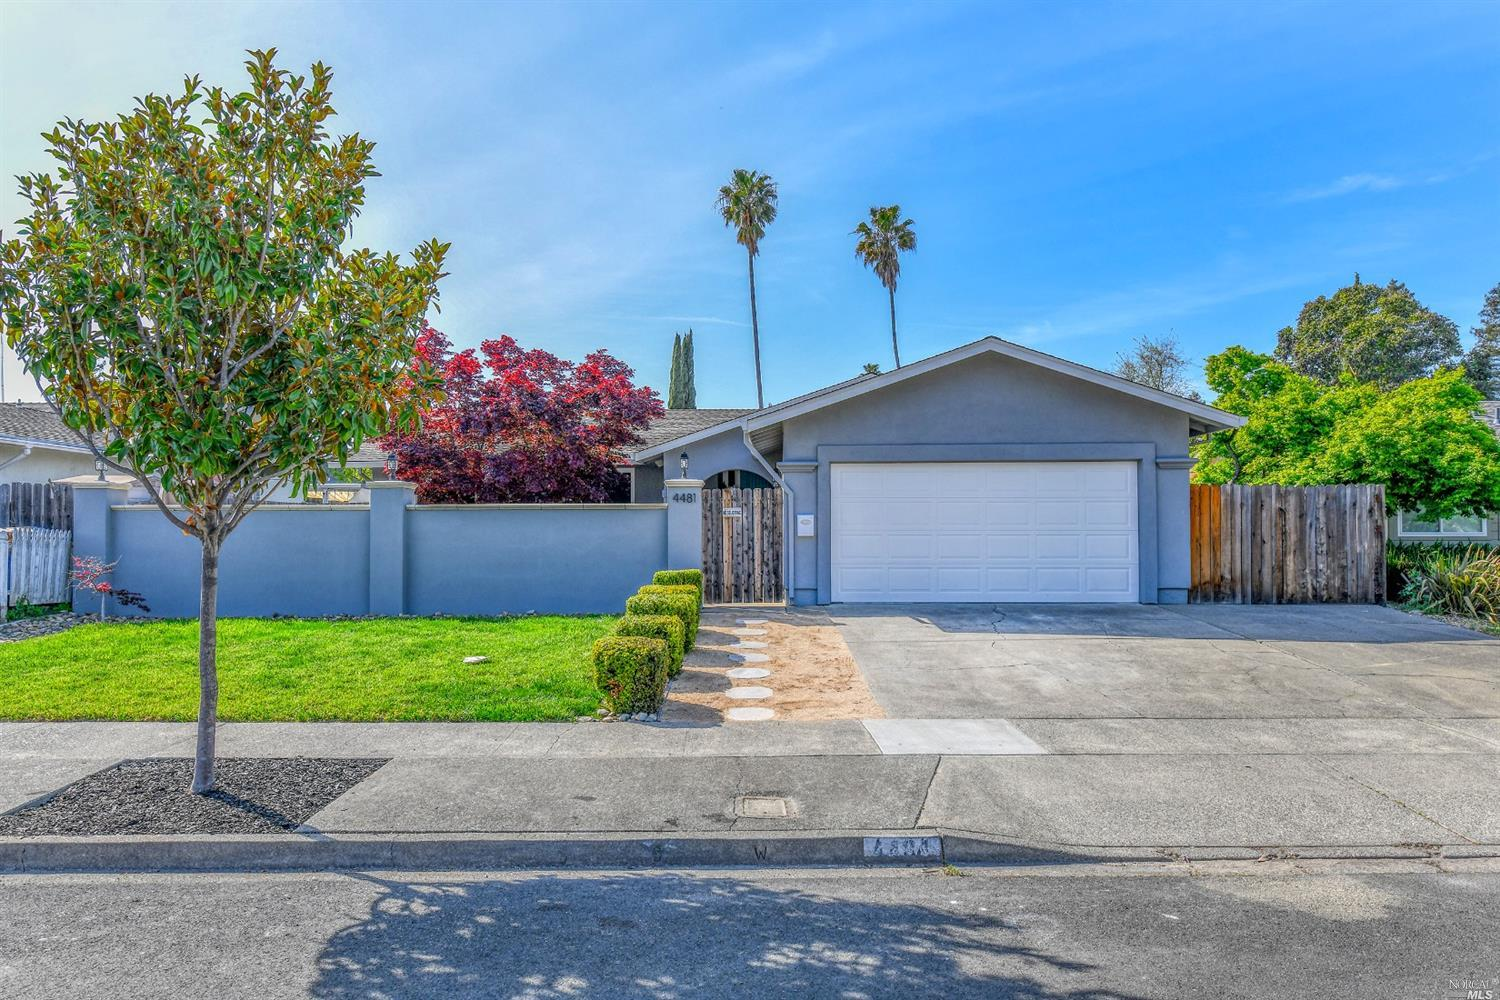 Awesome single story home in North Napa in great condition. Inviting front courtyard creates a priva